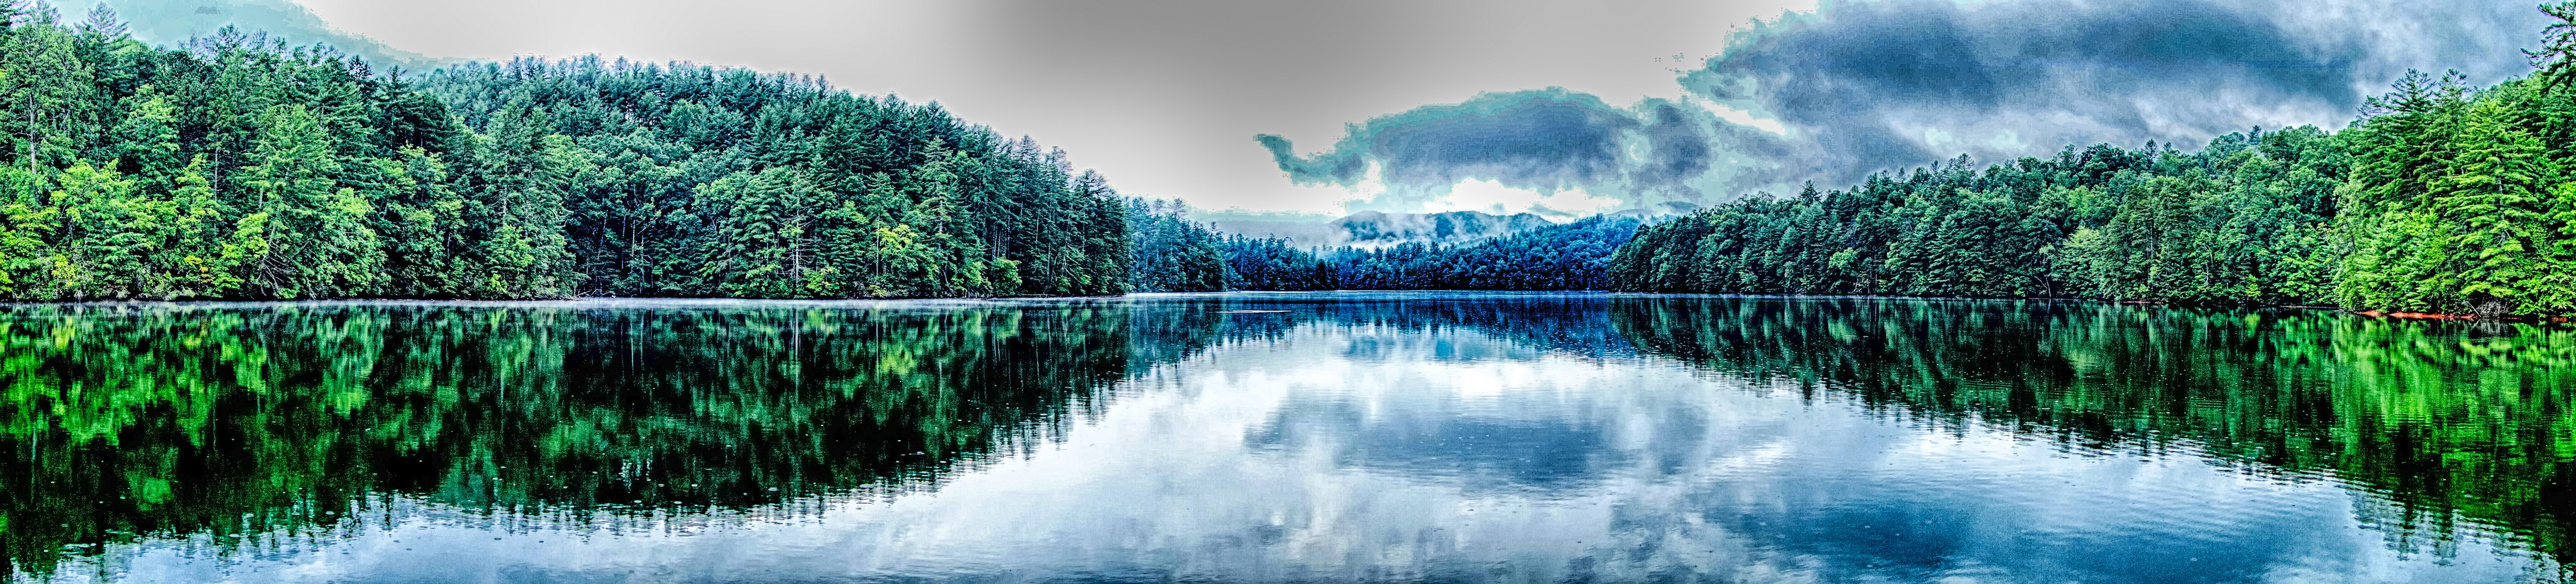 placid lake reflecting clouds